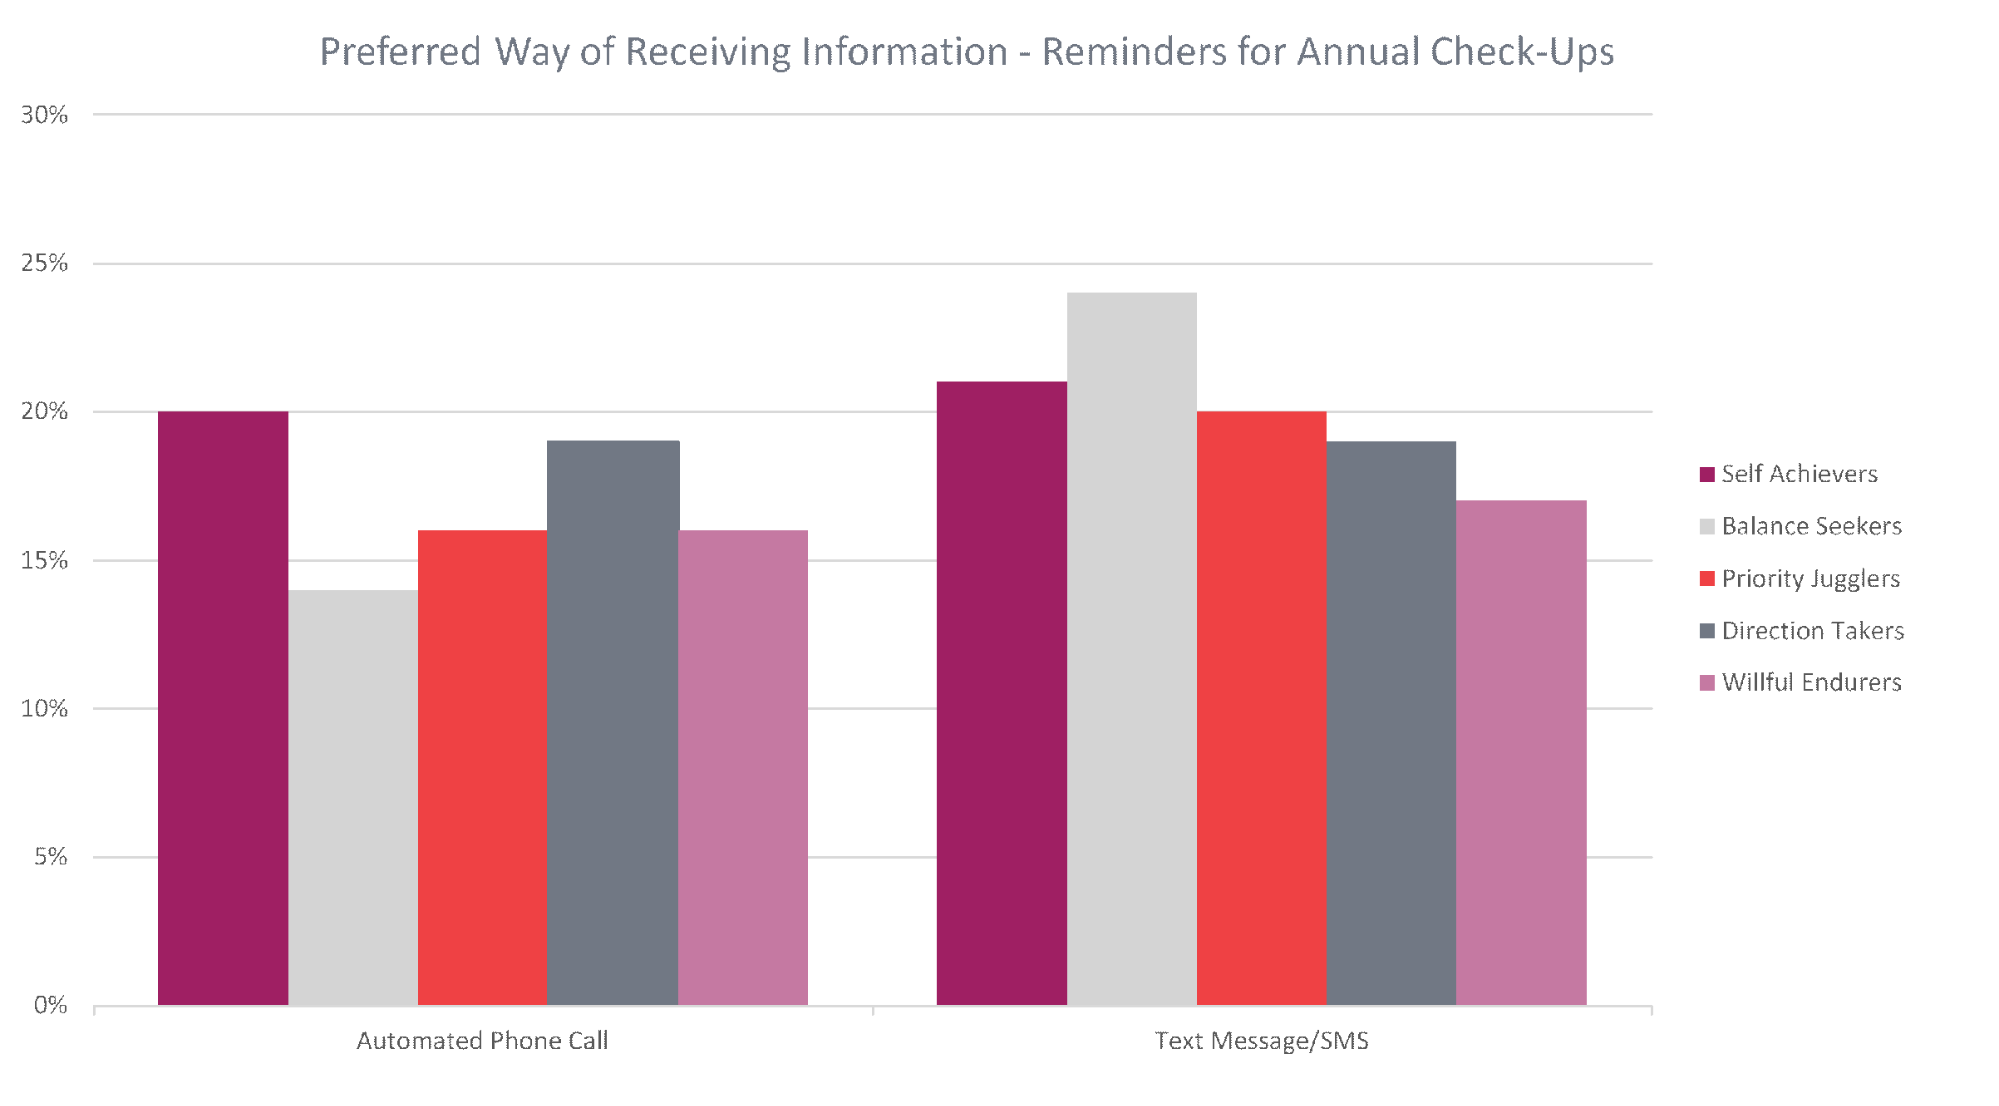 Preferred Way of Receiving Information - Reminders for Annual Check-Ups